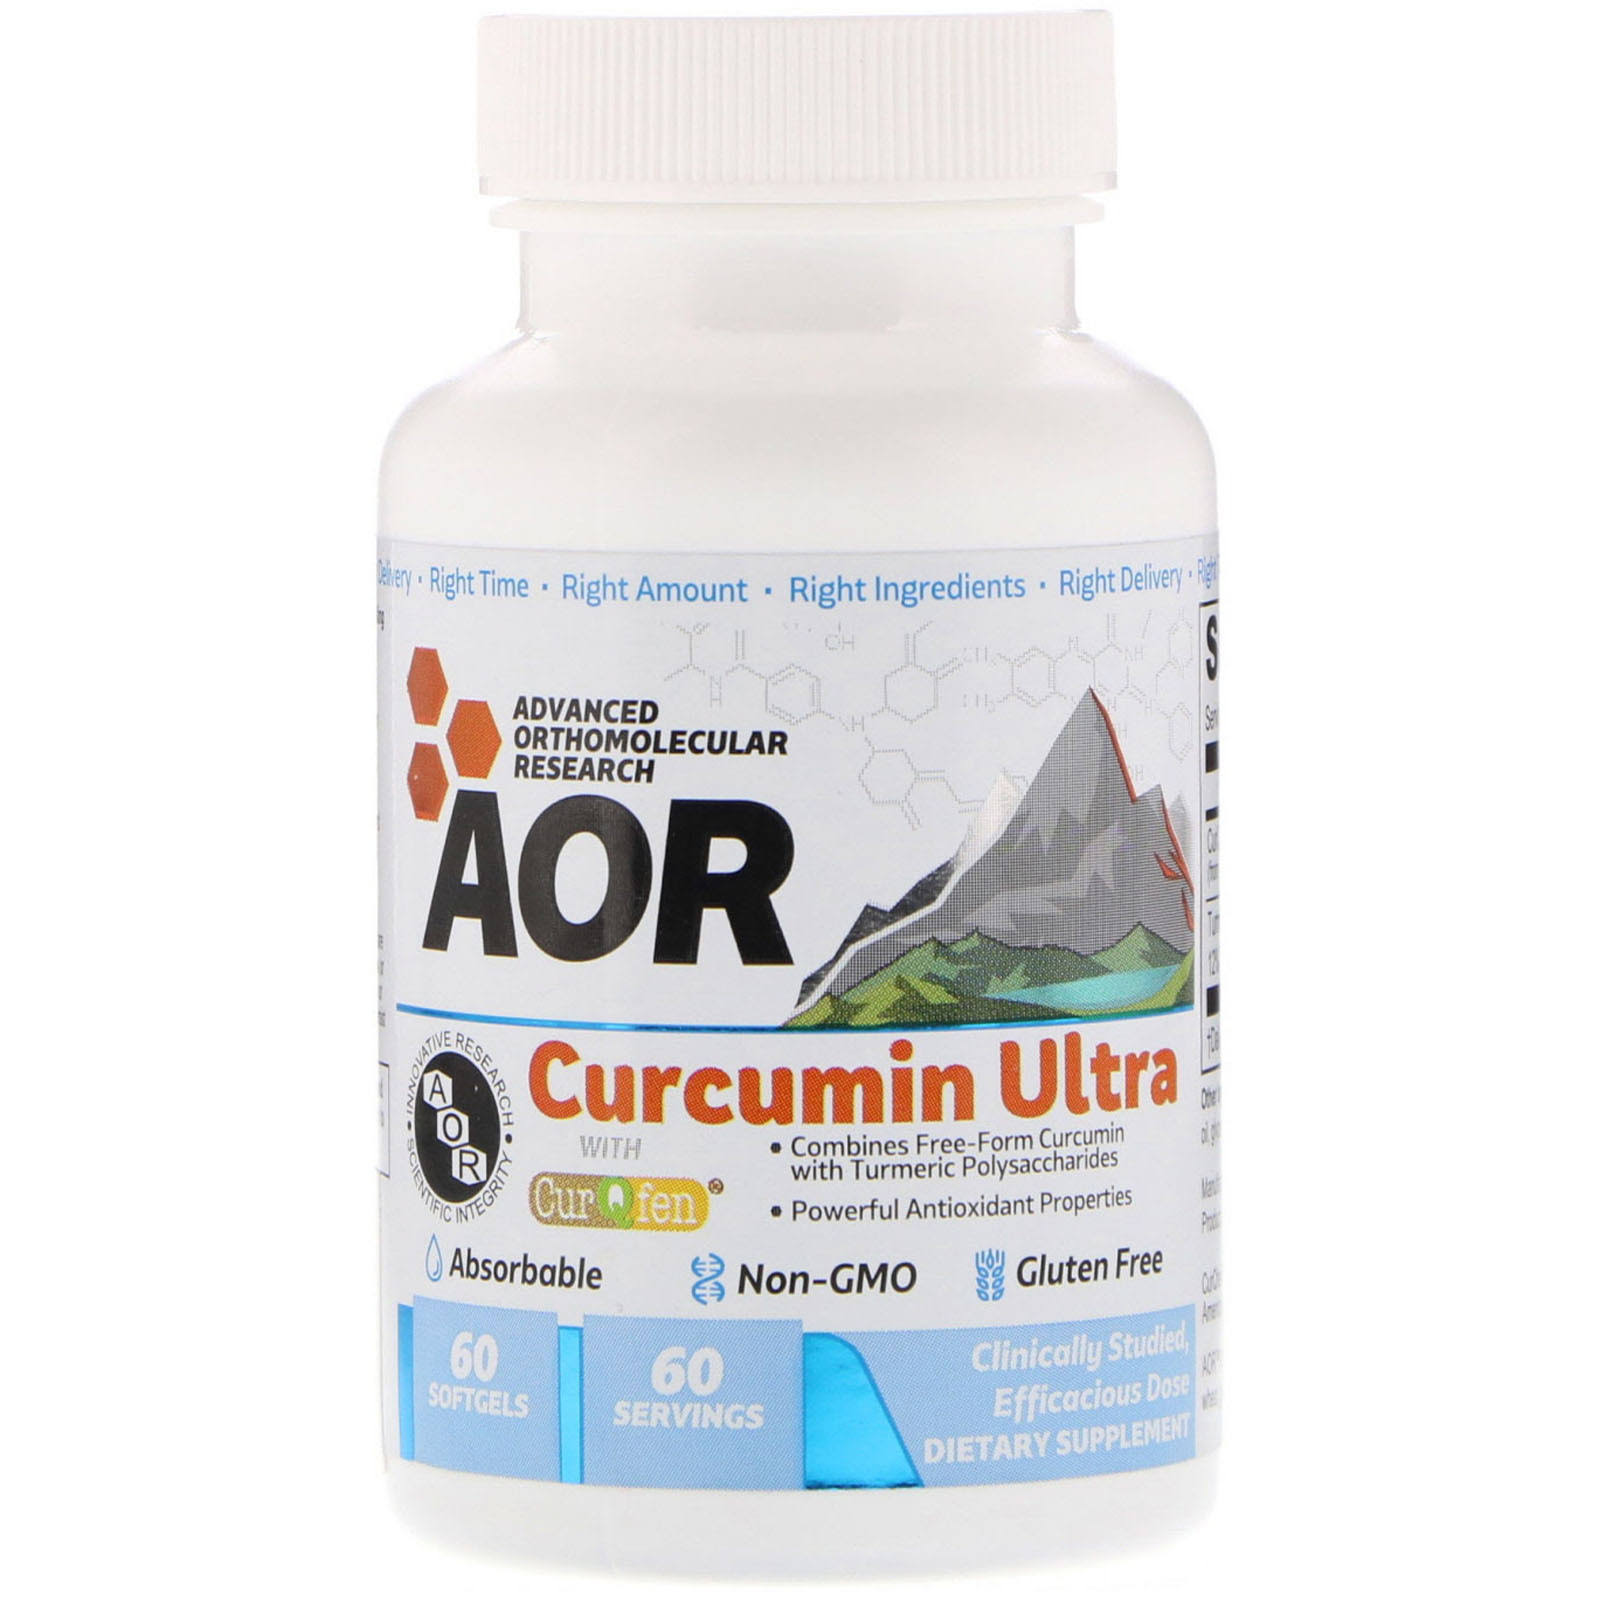 Curcumin Ultra 60 Softgels Advanced Orthomolecular